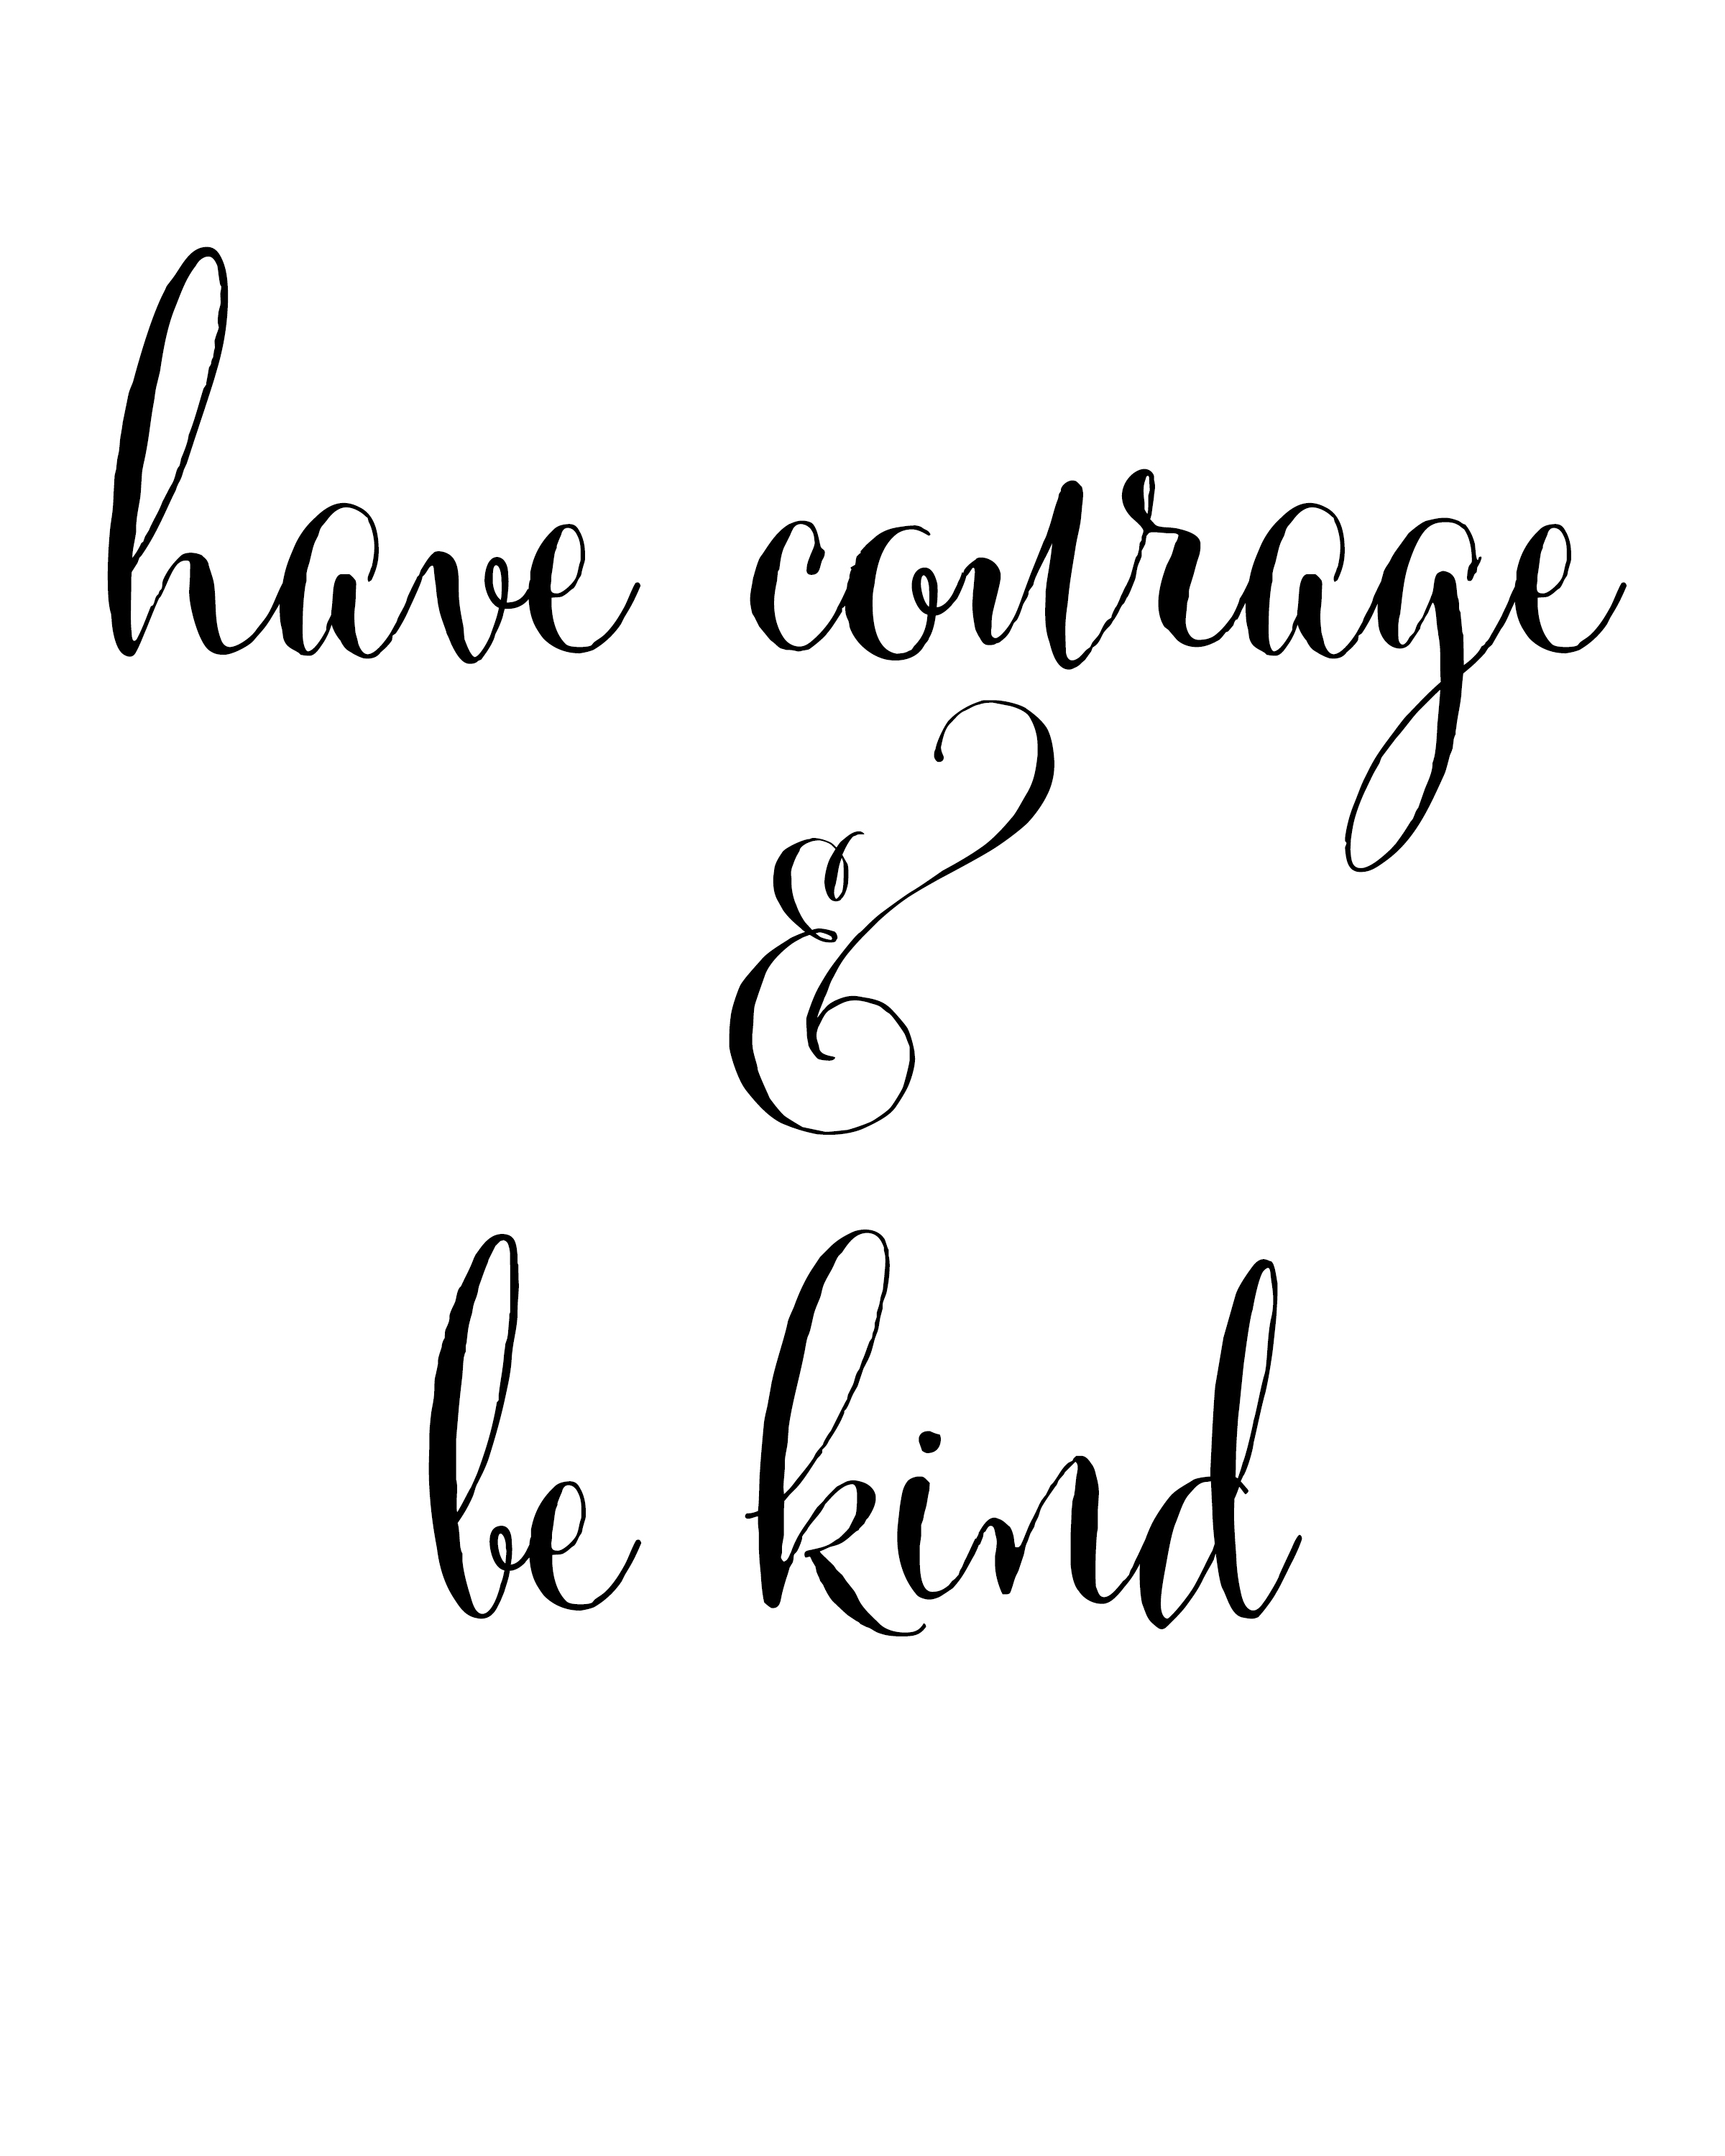 graphic regarding Have Courage and Be Kind Printable called Consist of bravery. Be type. healthful residing detox